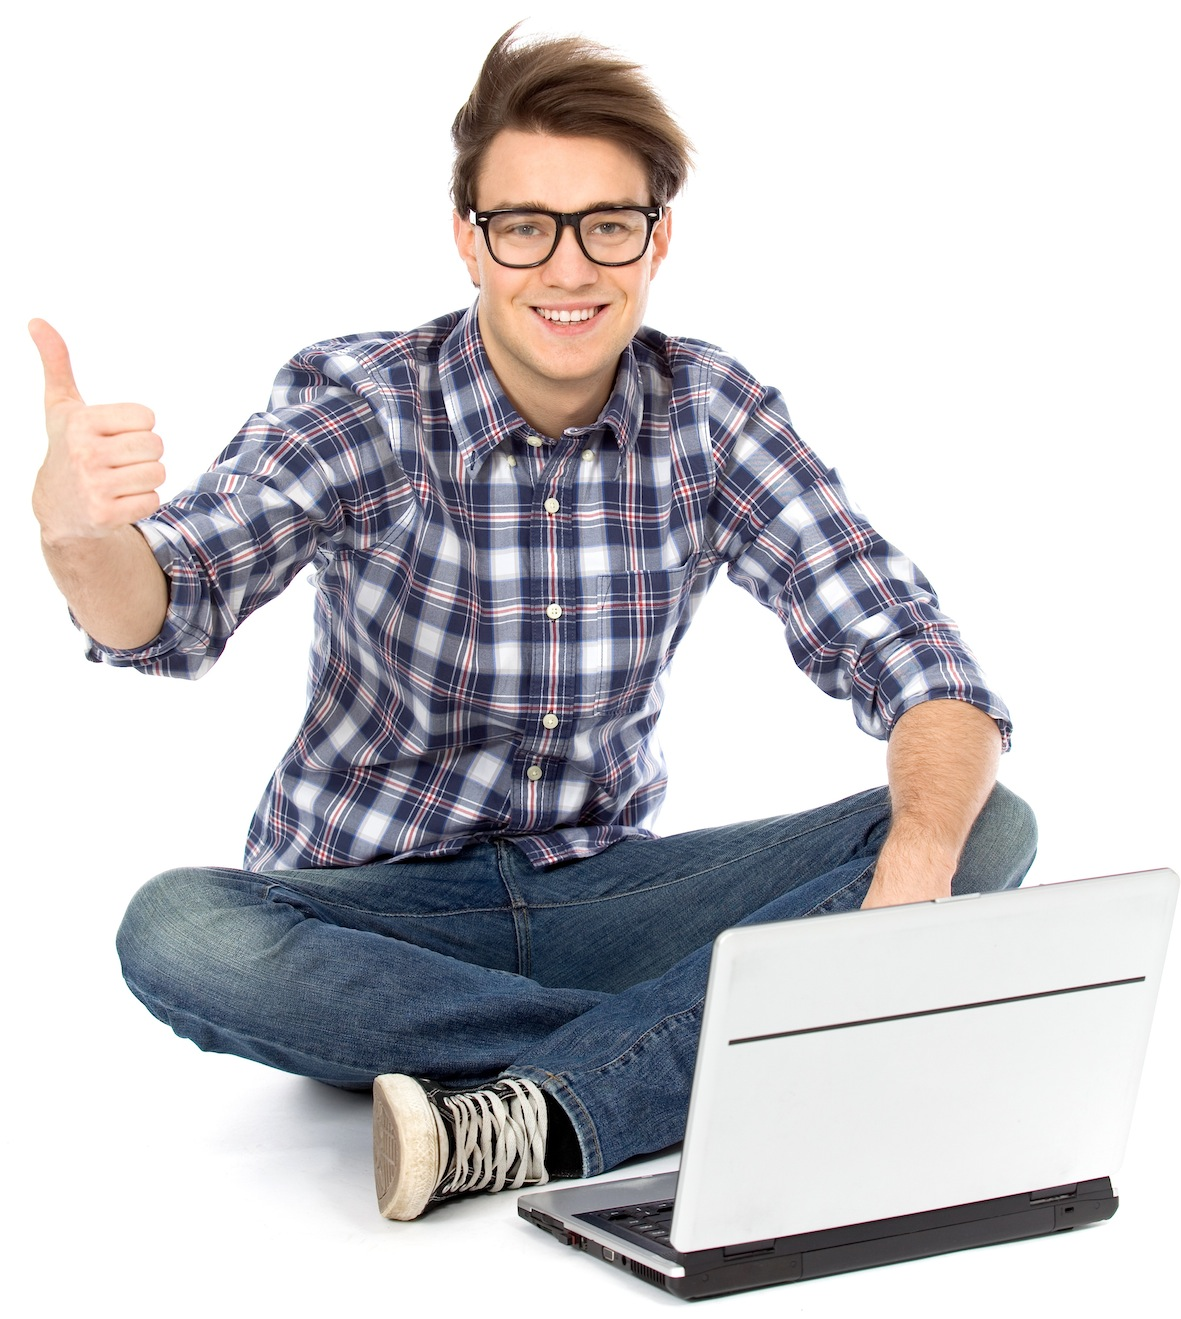 Guy with laptop showing thumbs up